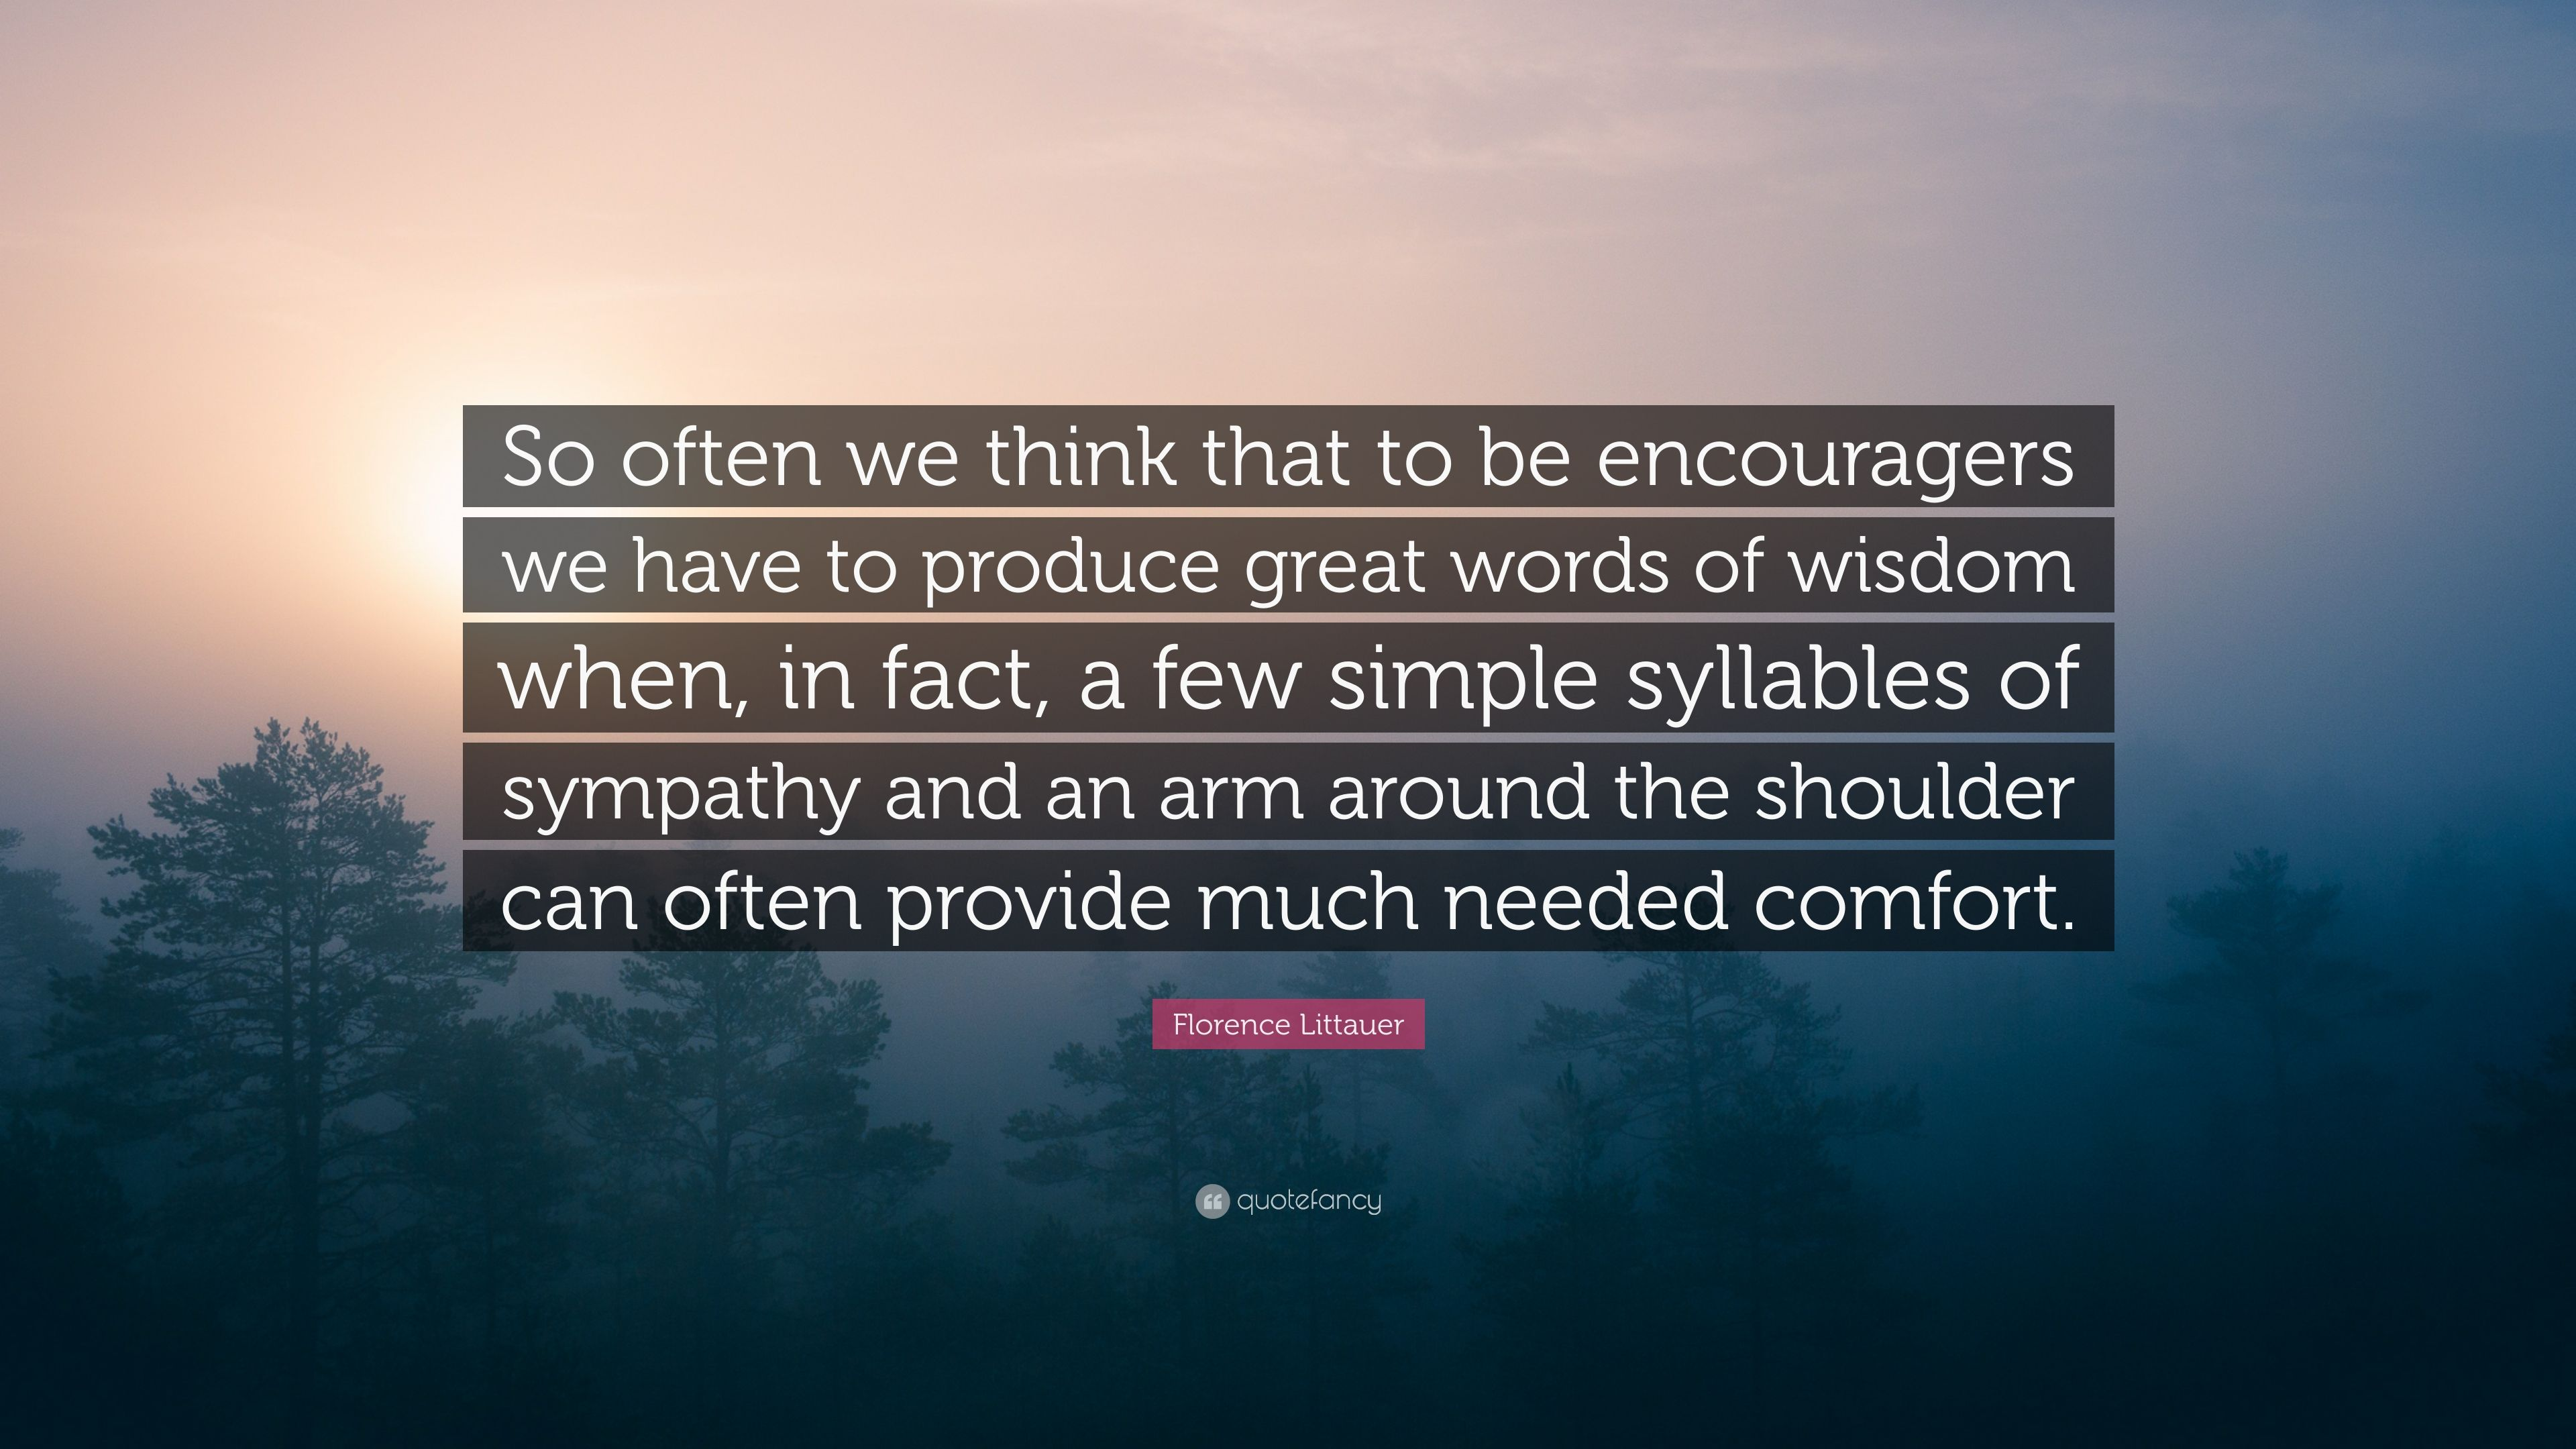 florence littauer quote so often we think that to be encouragers